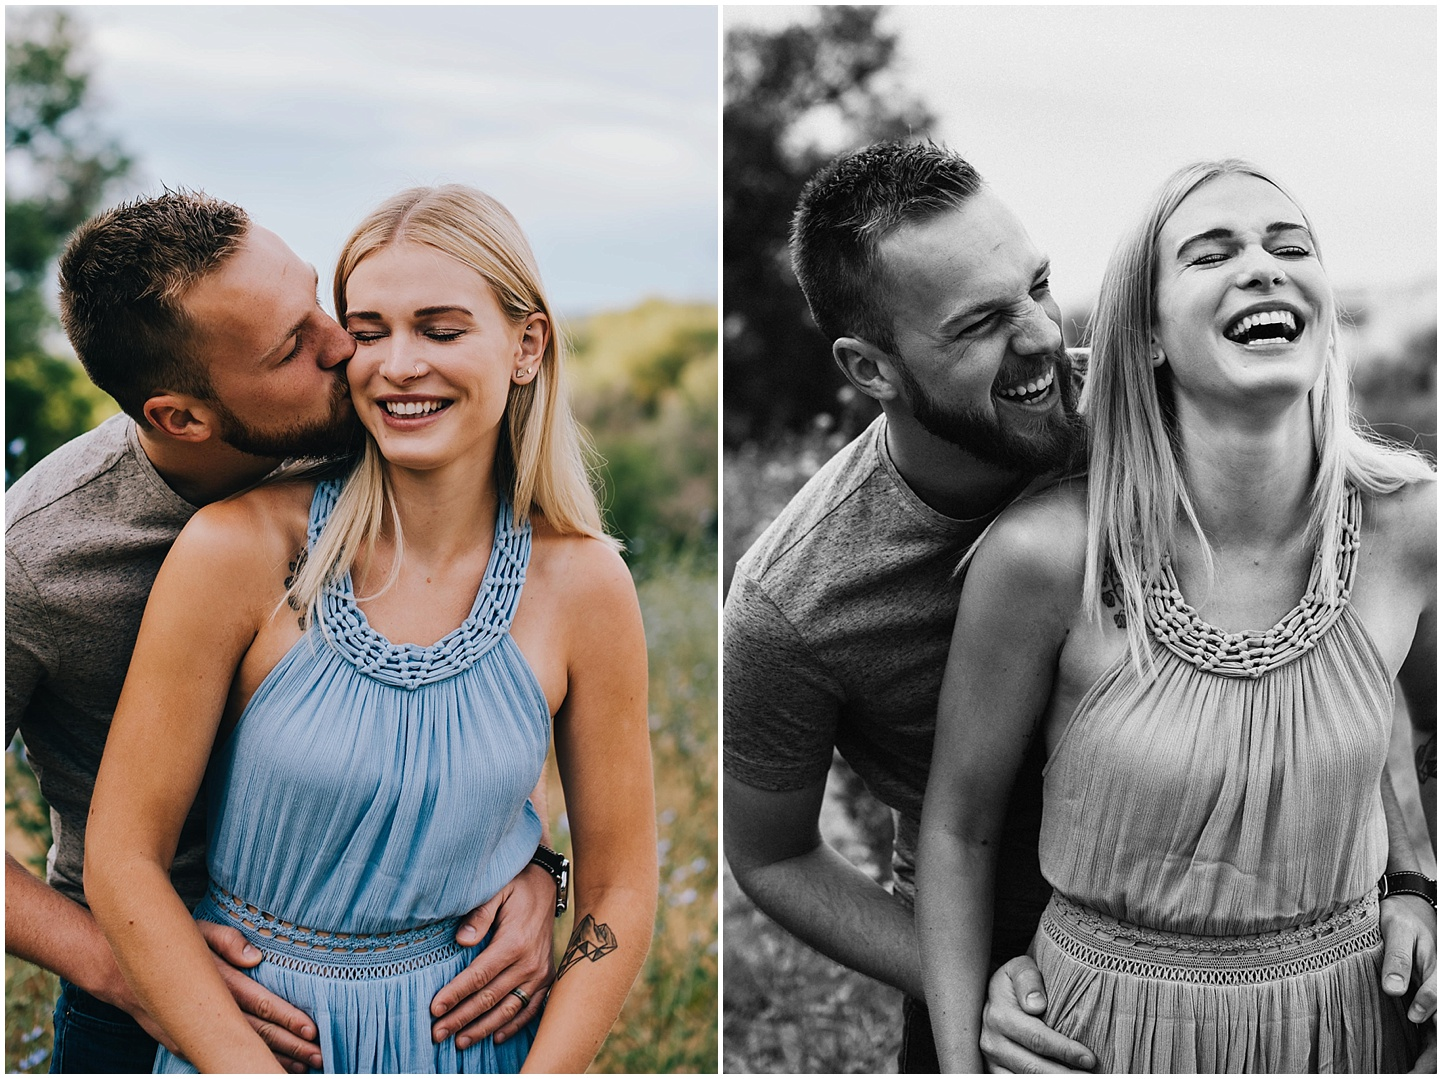 Betsy and Connor laughing during their Colorado engagement session.